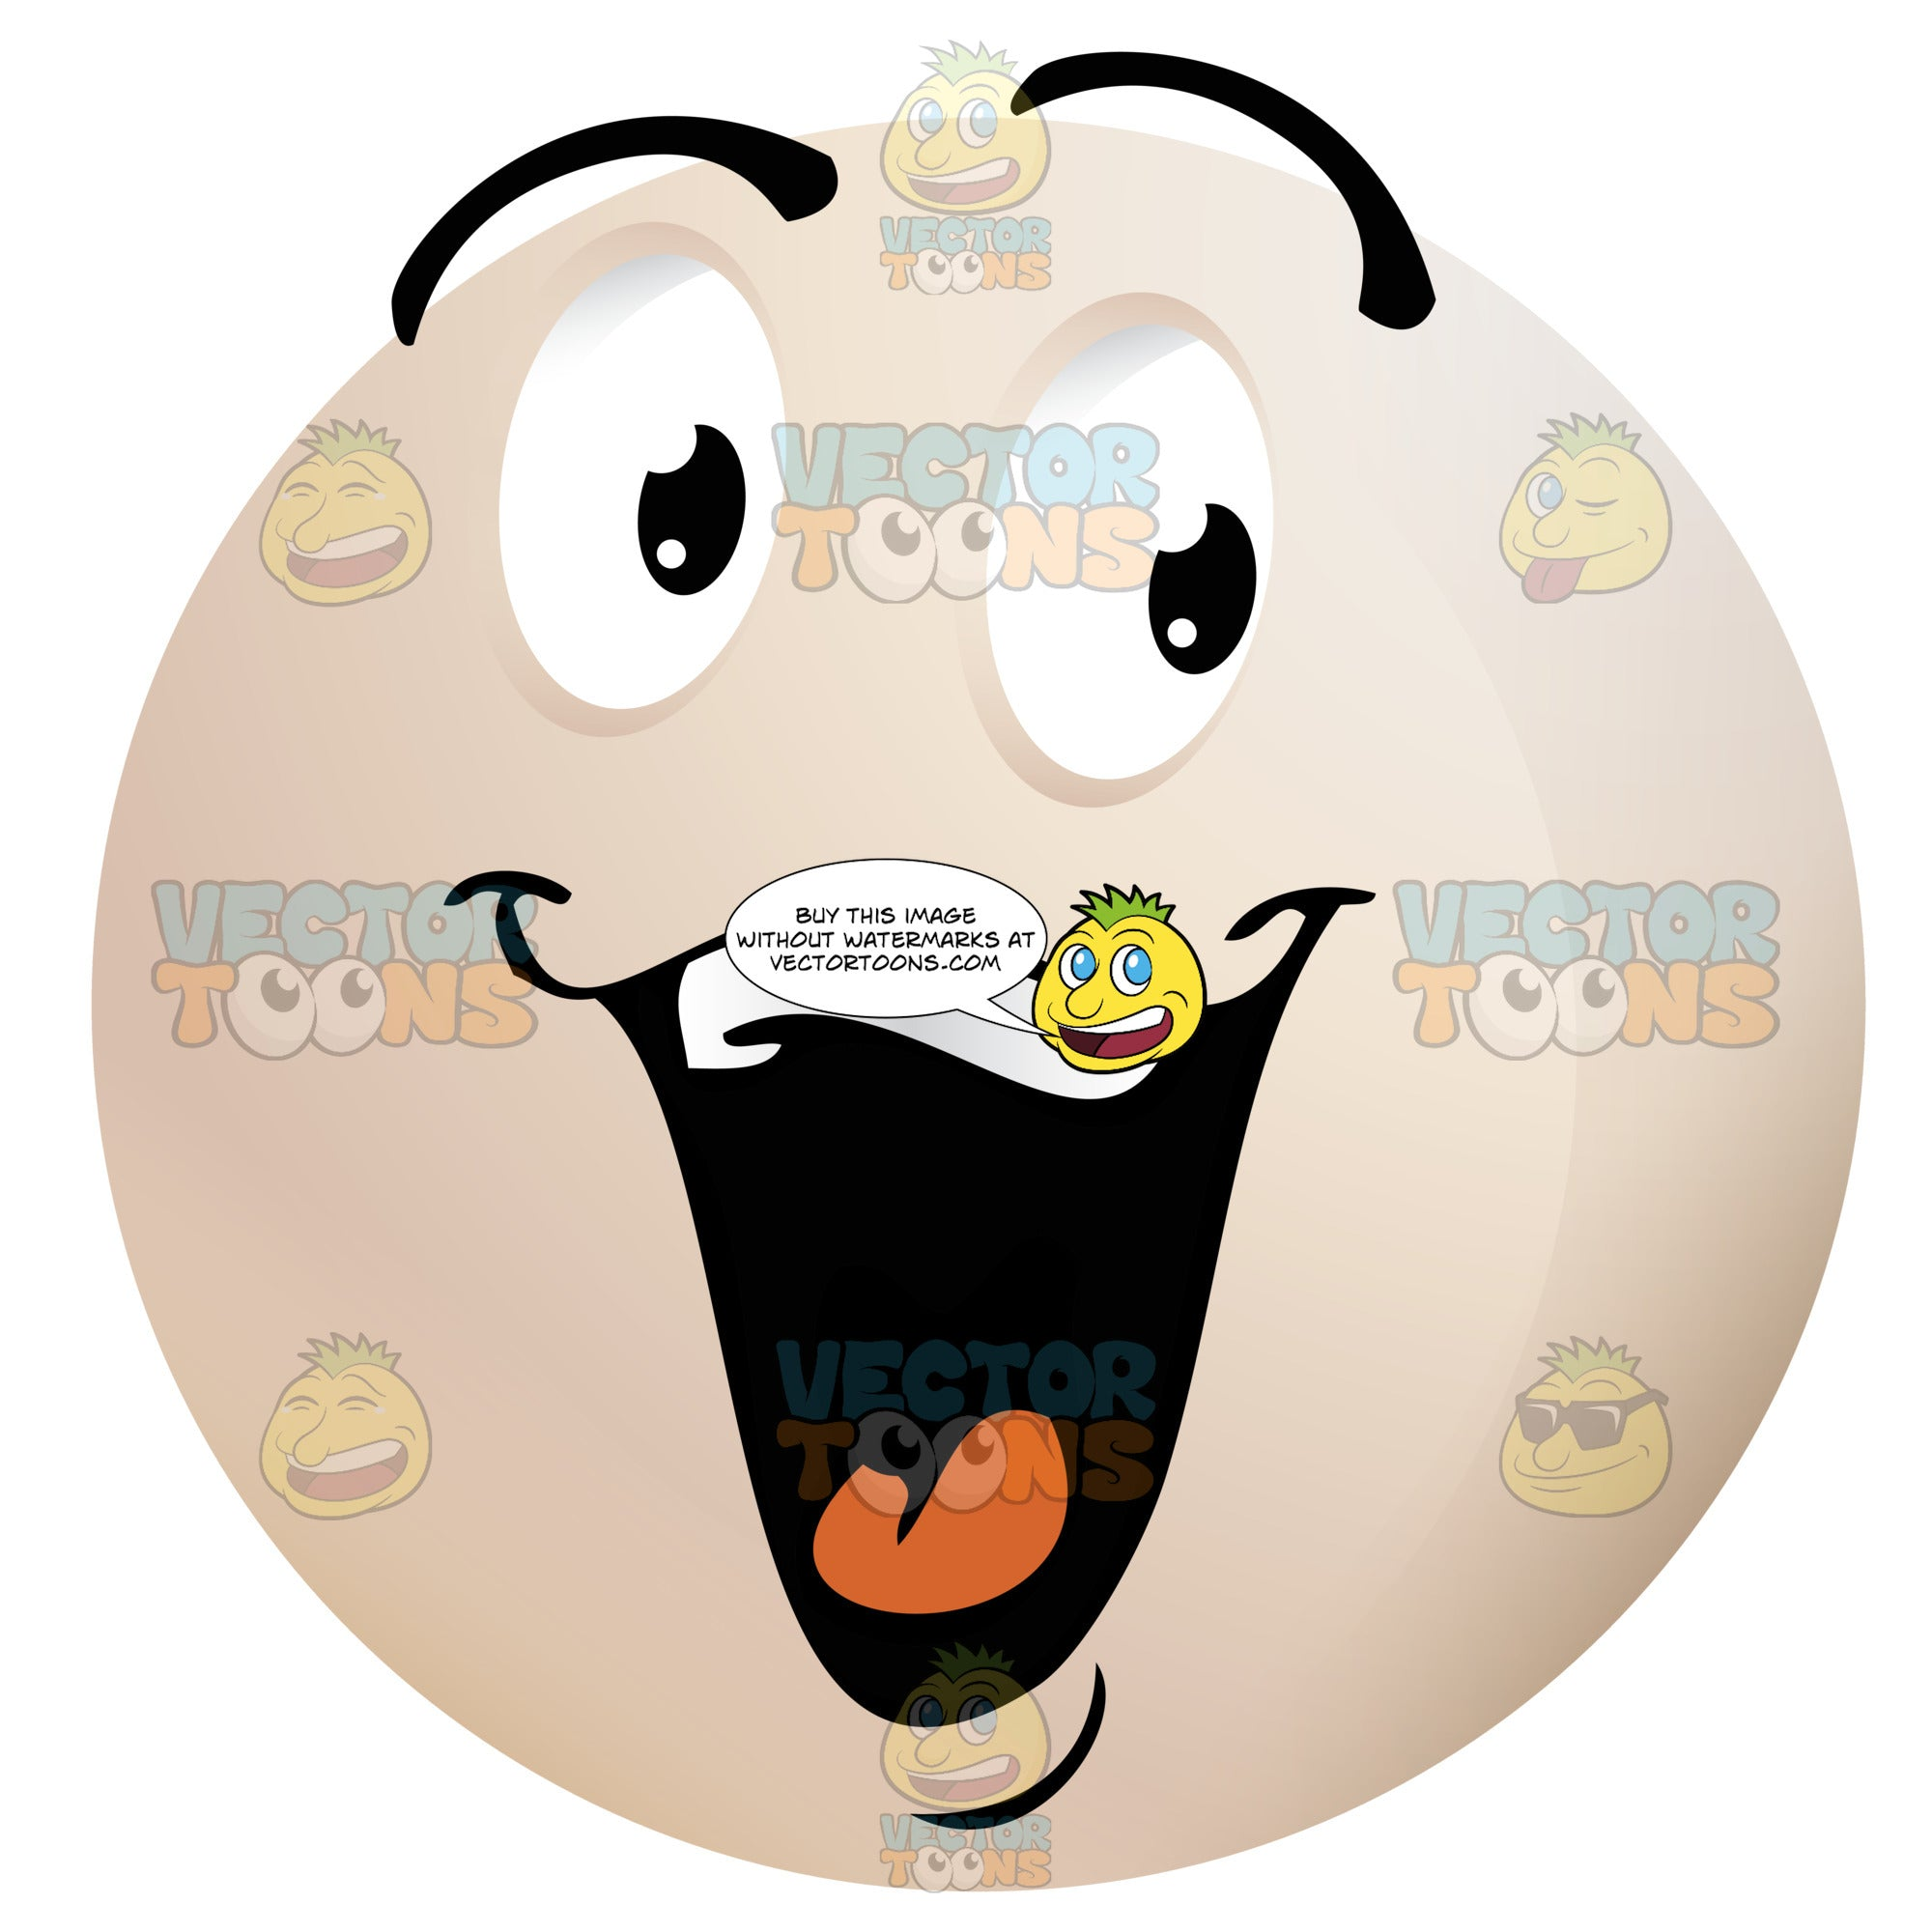 Laughing Light Colored Smiley Face Emoticon With Raised Eyebrows